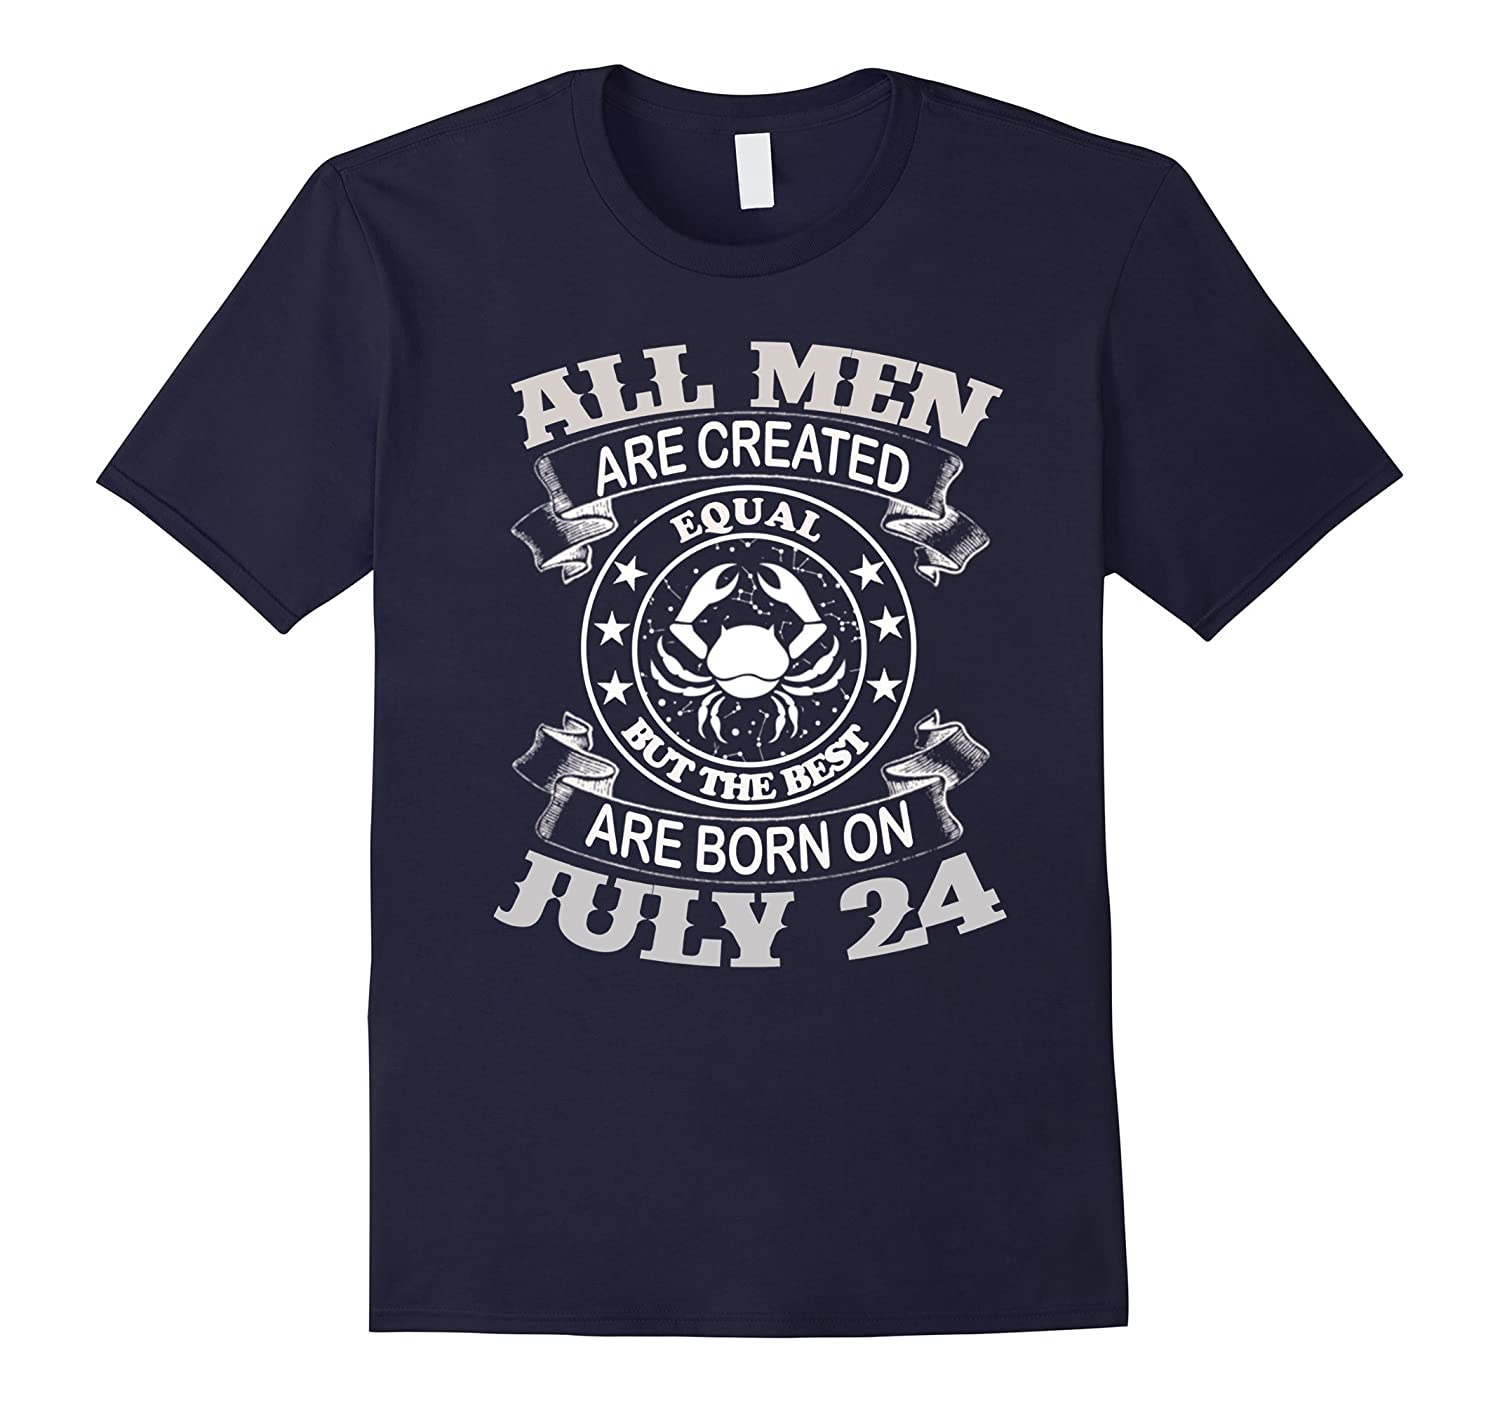 All Men Are Created Equal But The Best Are Born On July 24-PL